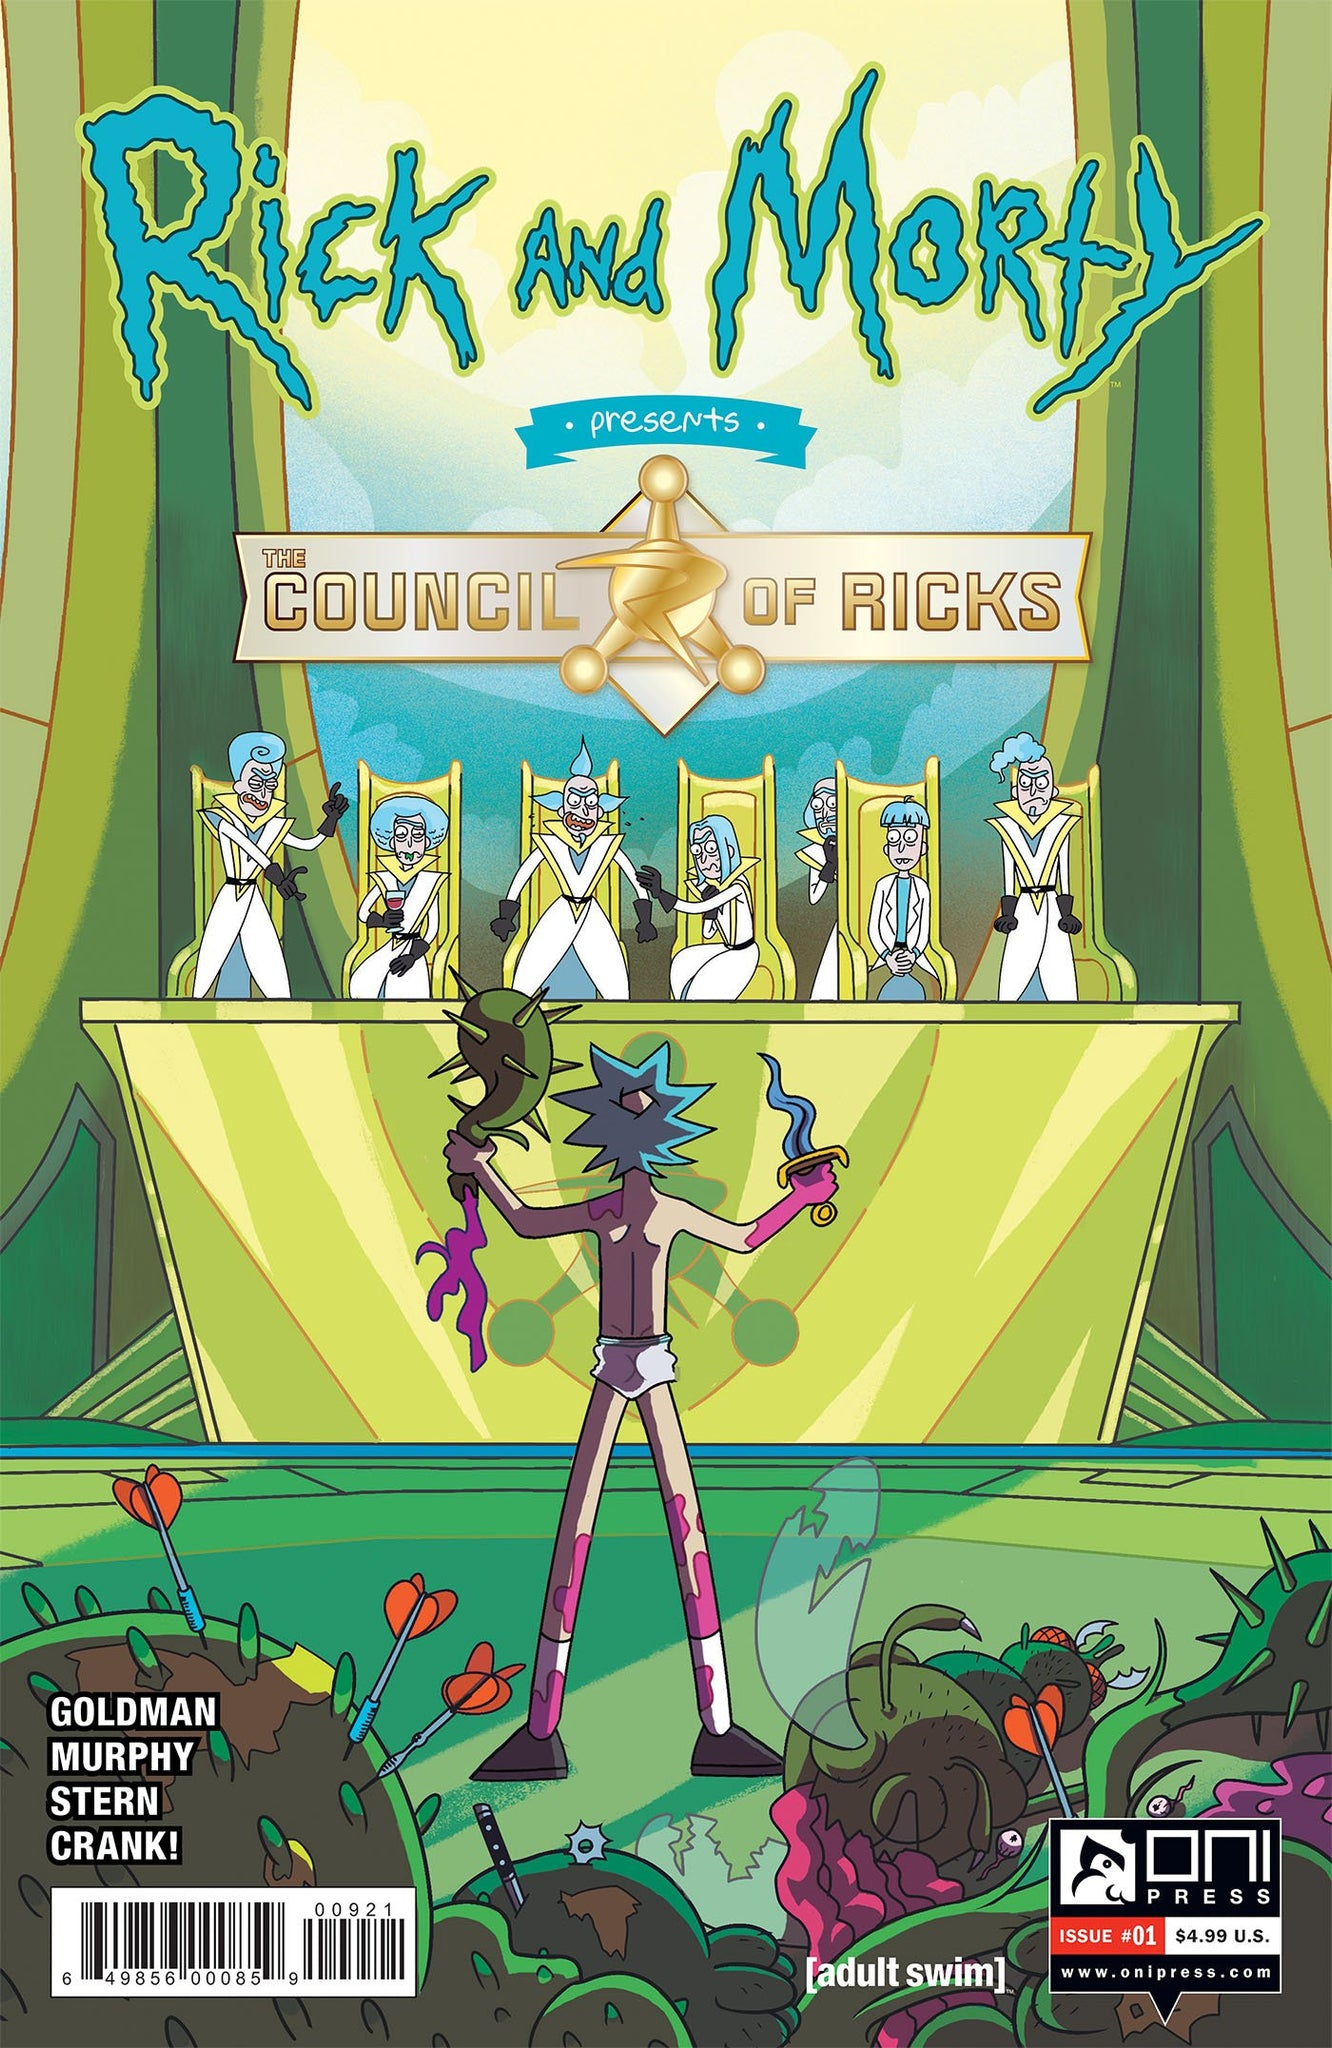 Rick and Morty 01 Council of Ricks (Adult Swim)